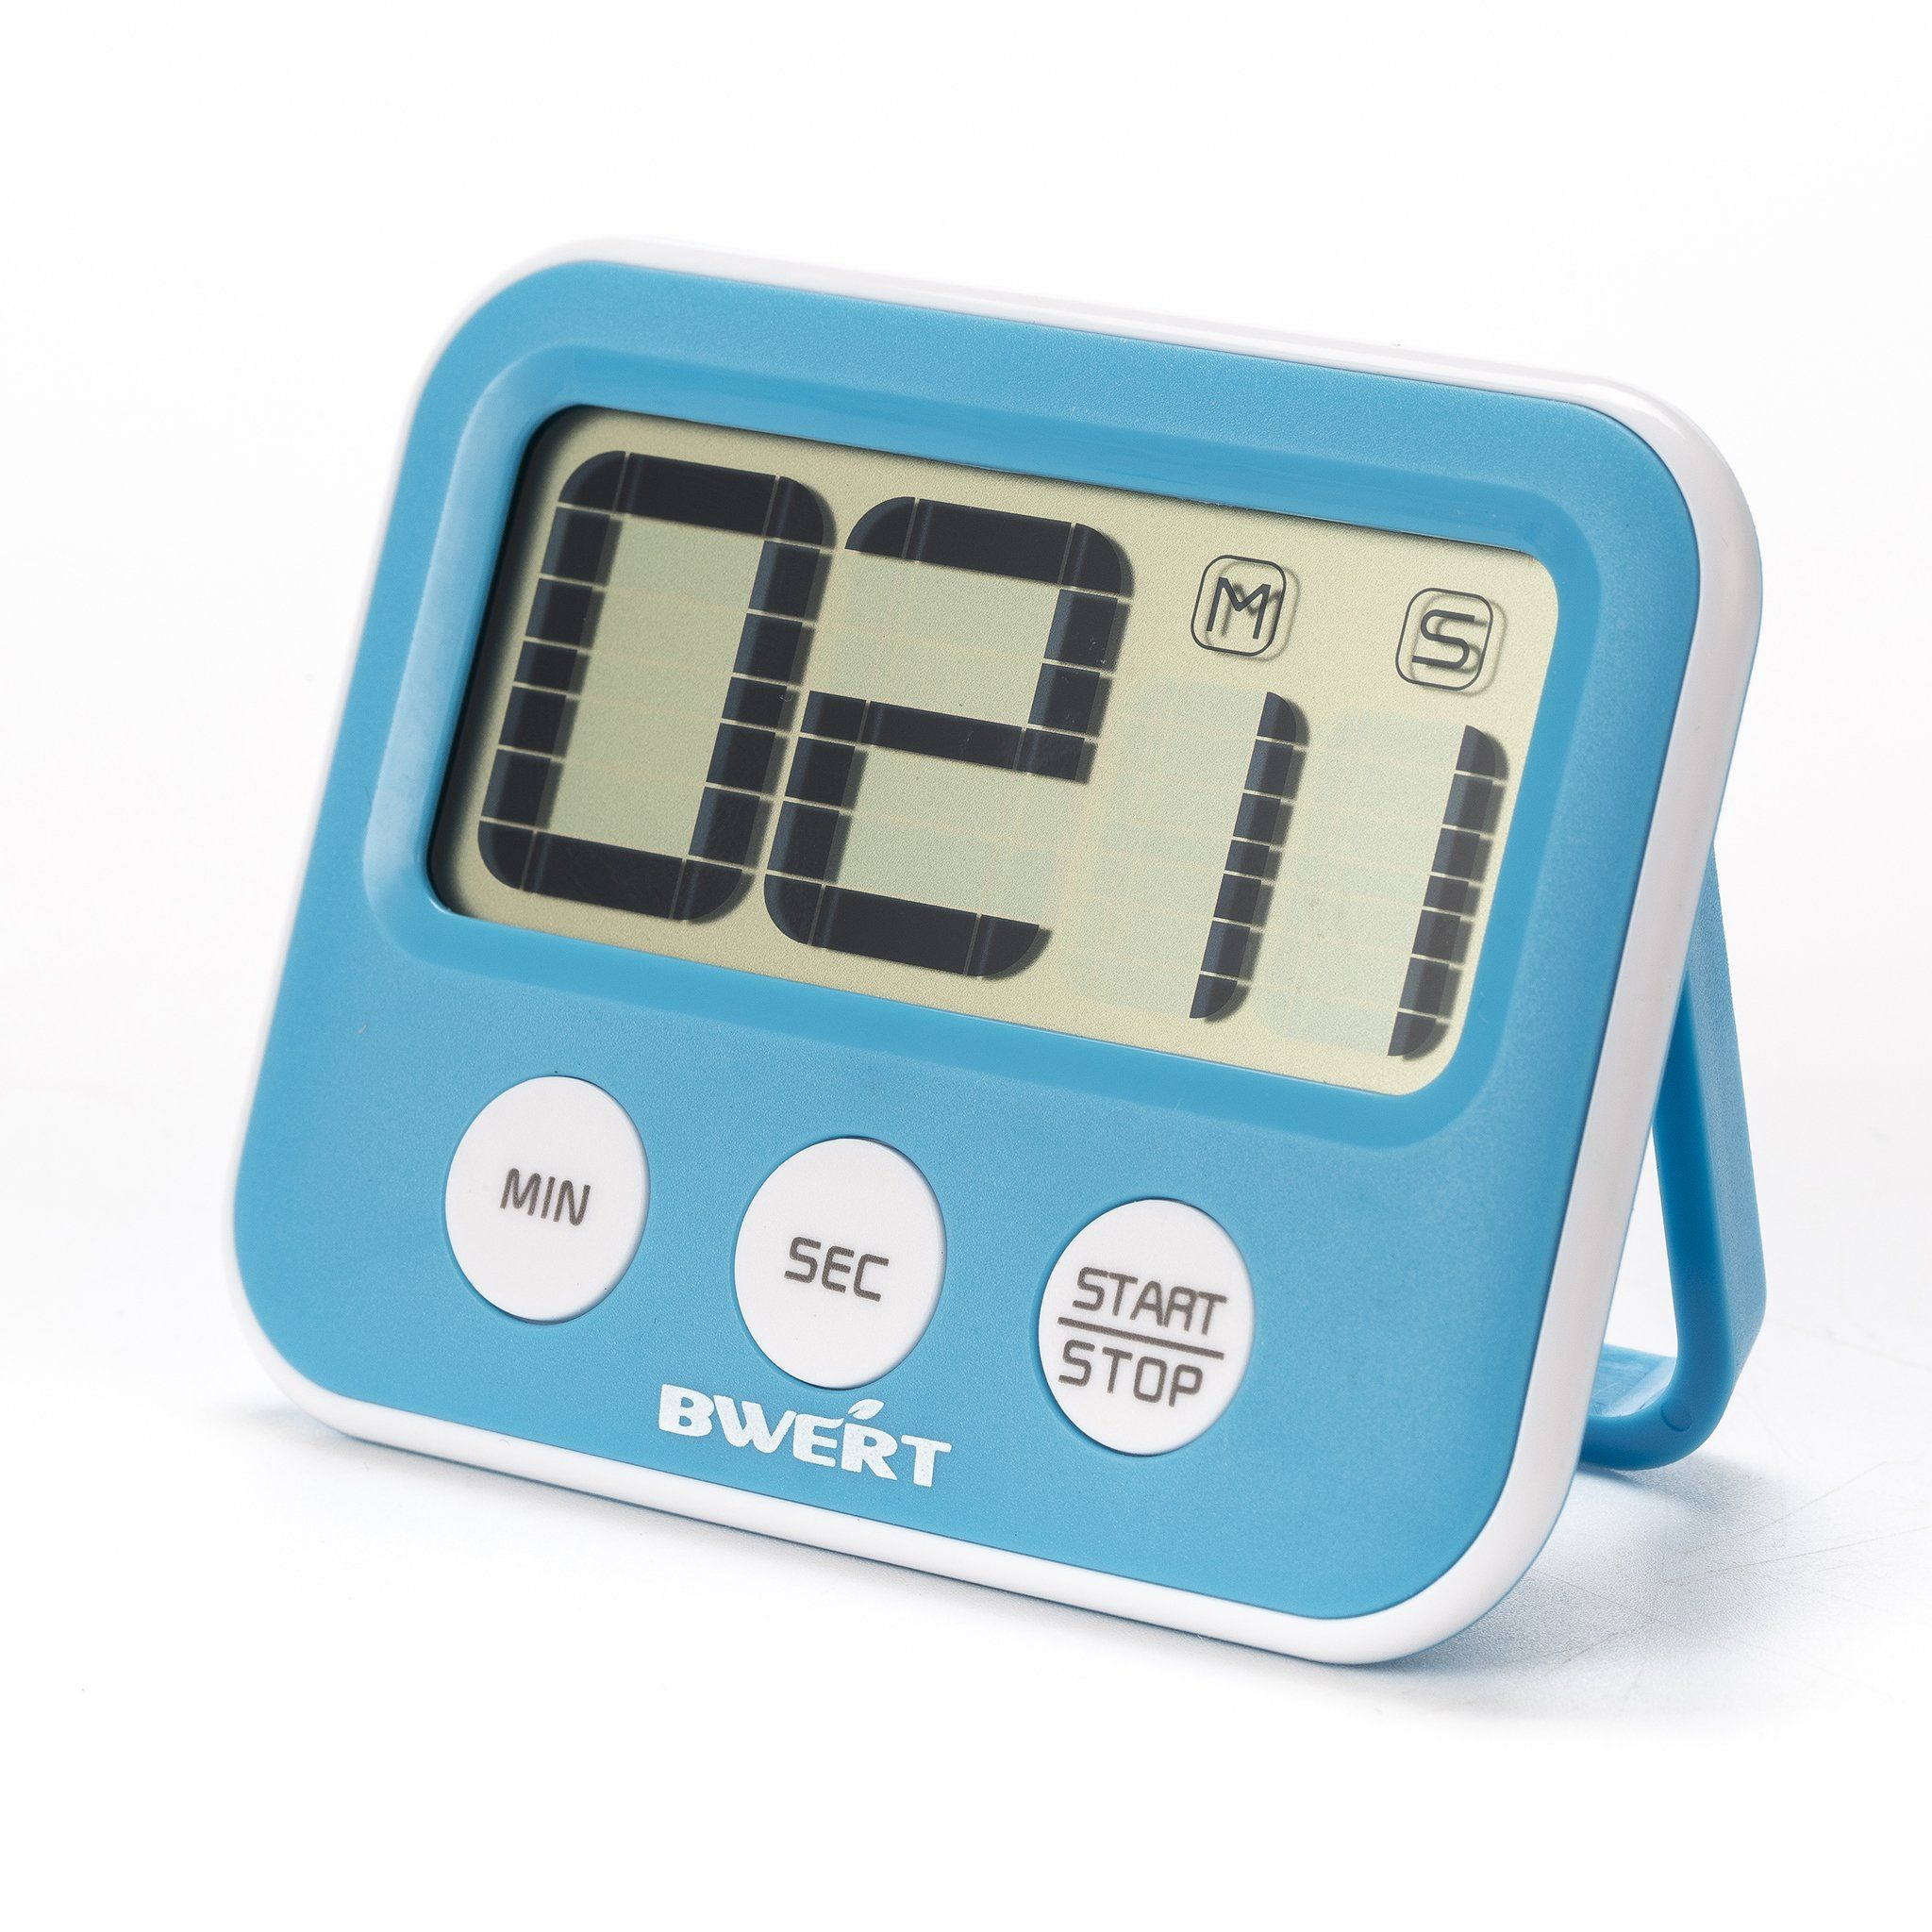 bwert digital kitchen timers large lcd display best